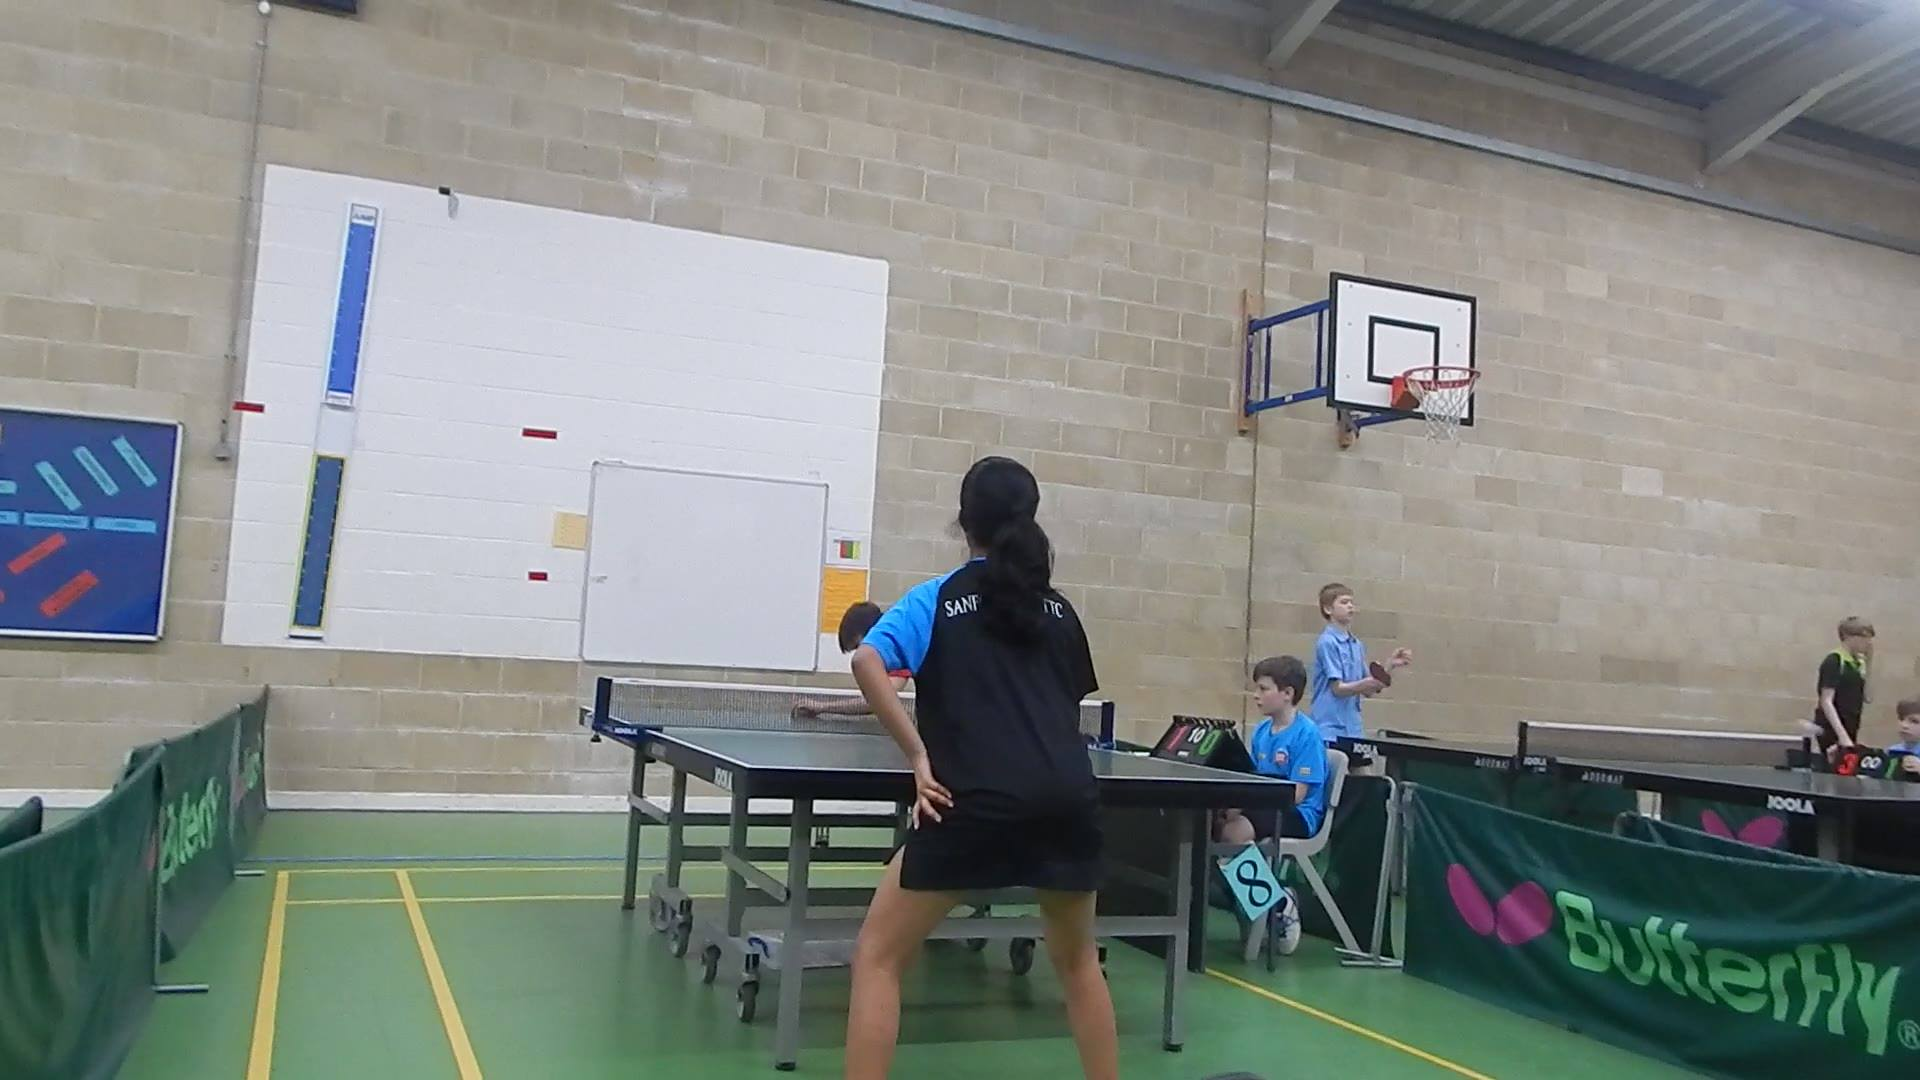 Day 3 National Cadet produced some excellent Table Tennis. Sanford Link little under strength, but this did not stop the team produce some excellent rallies. Emma playing for the first time after a break for a year, matched up to her opponents. Edwar